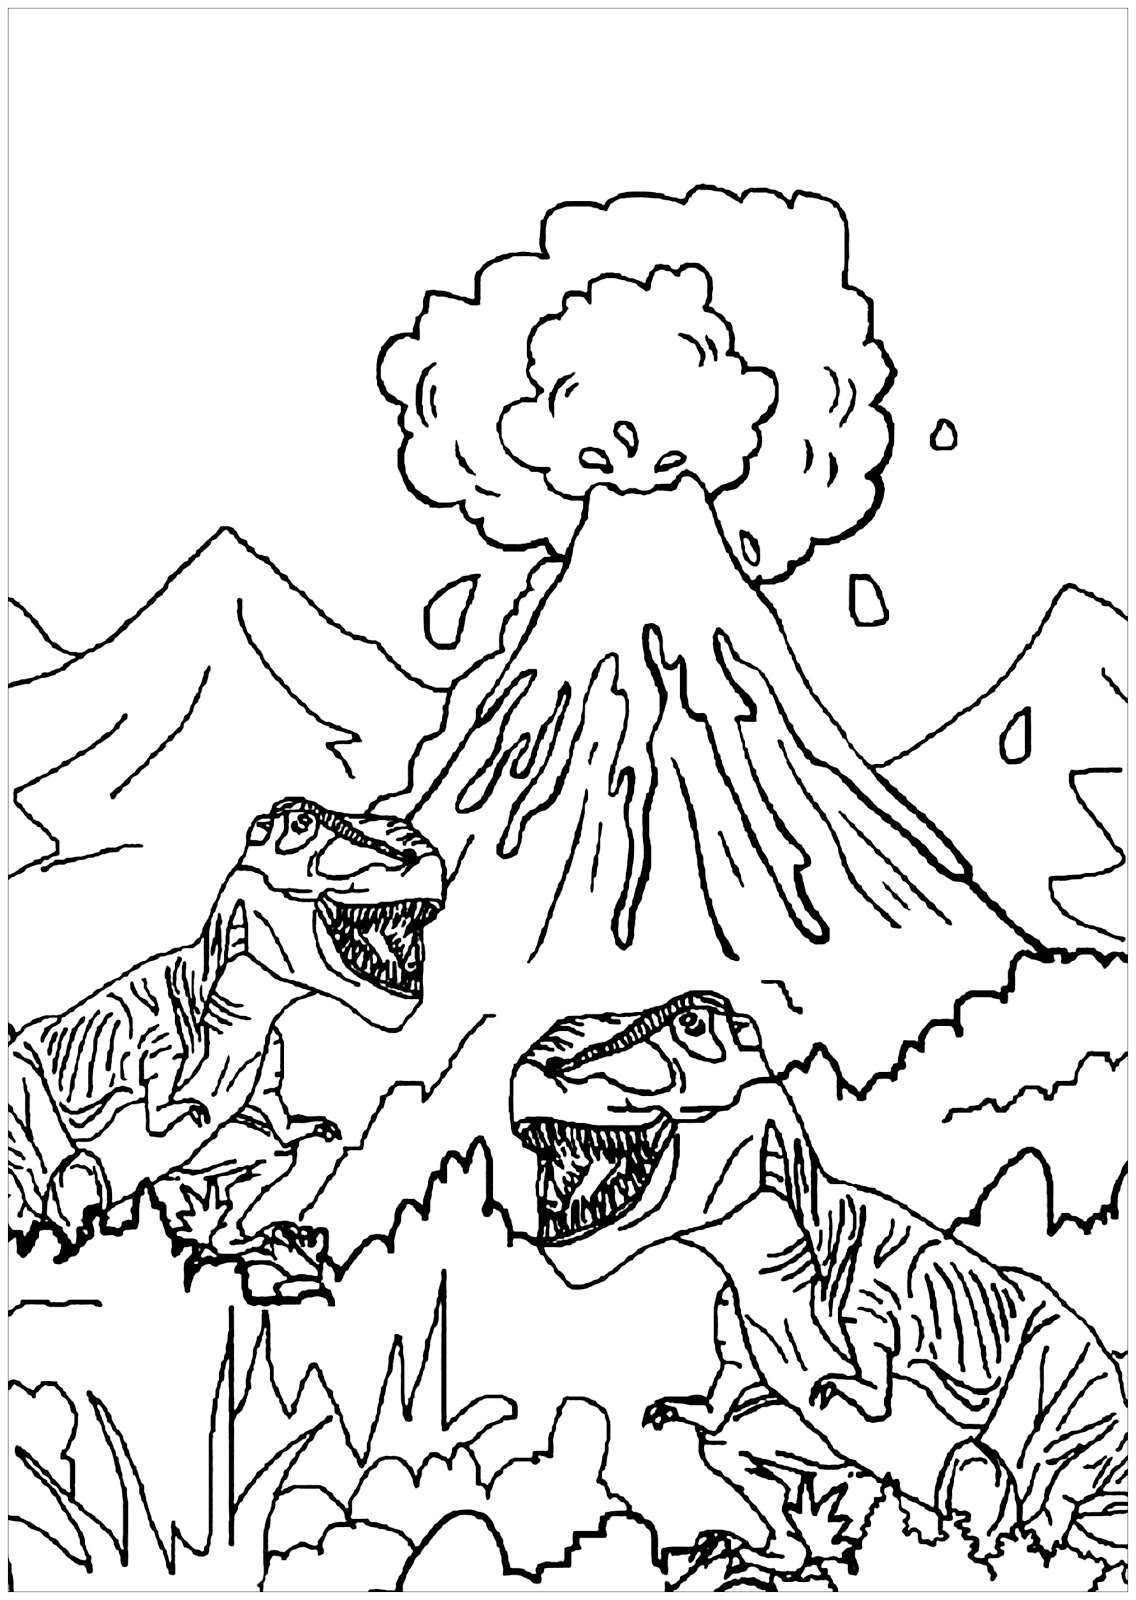 Dinosaurs coloring pages 54